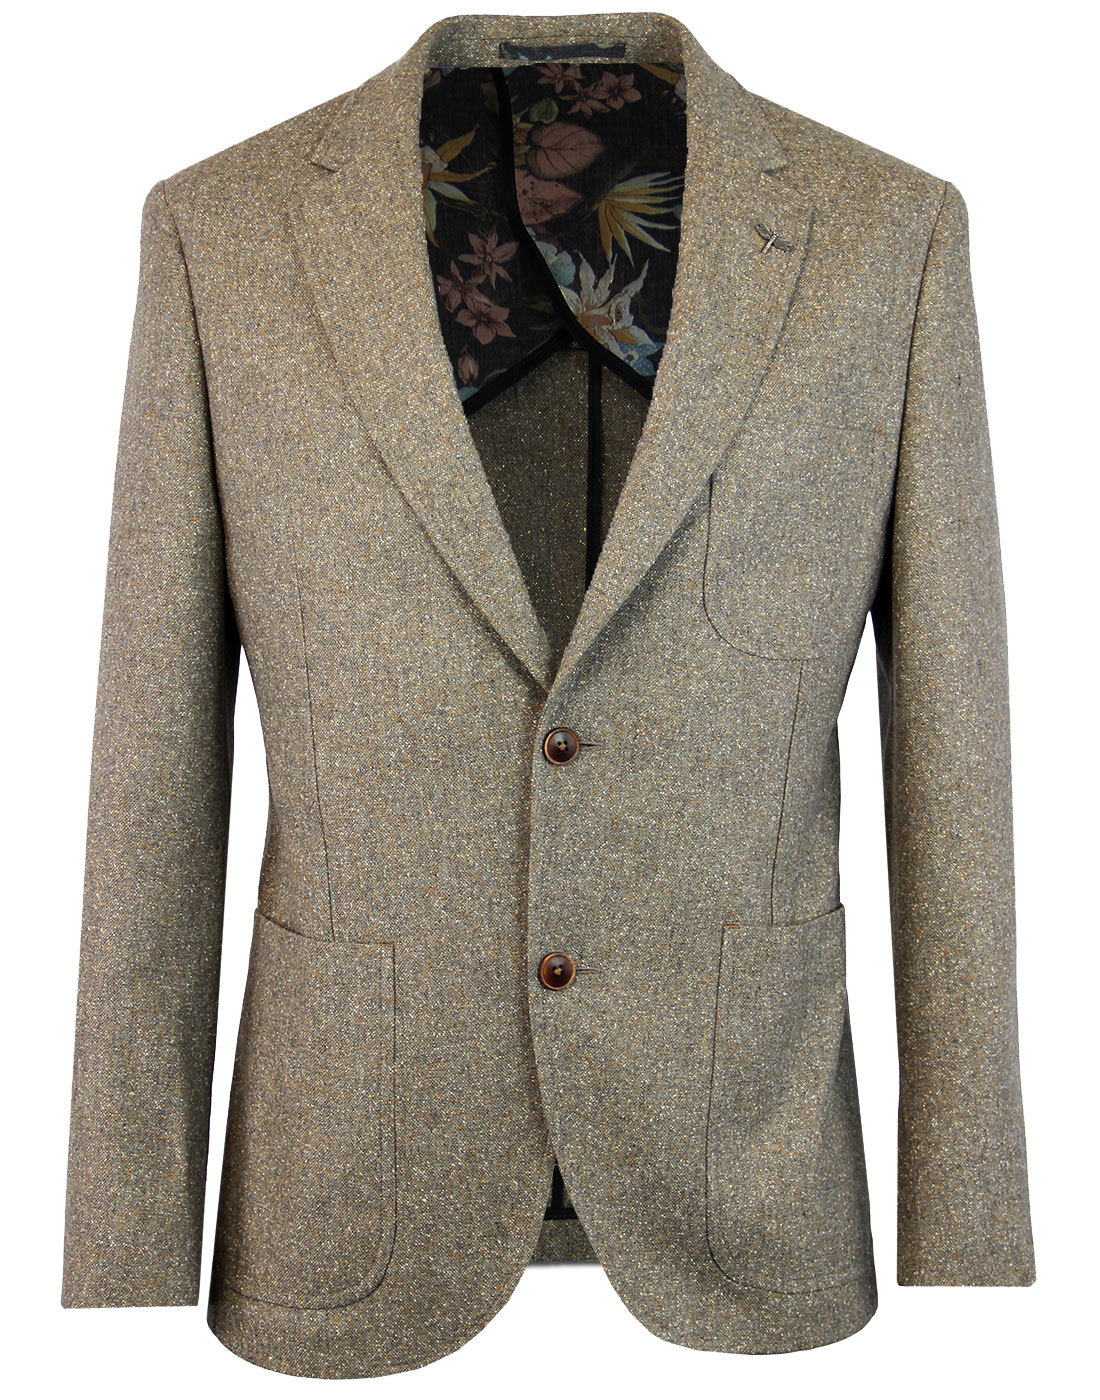 GIBSON LONDON 2 Button Sand Donegal Suit Jacket